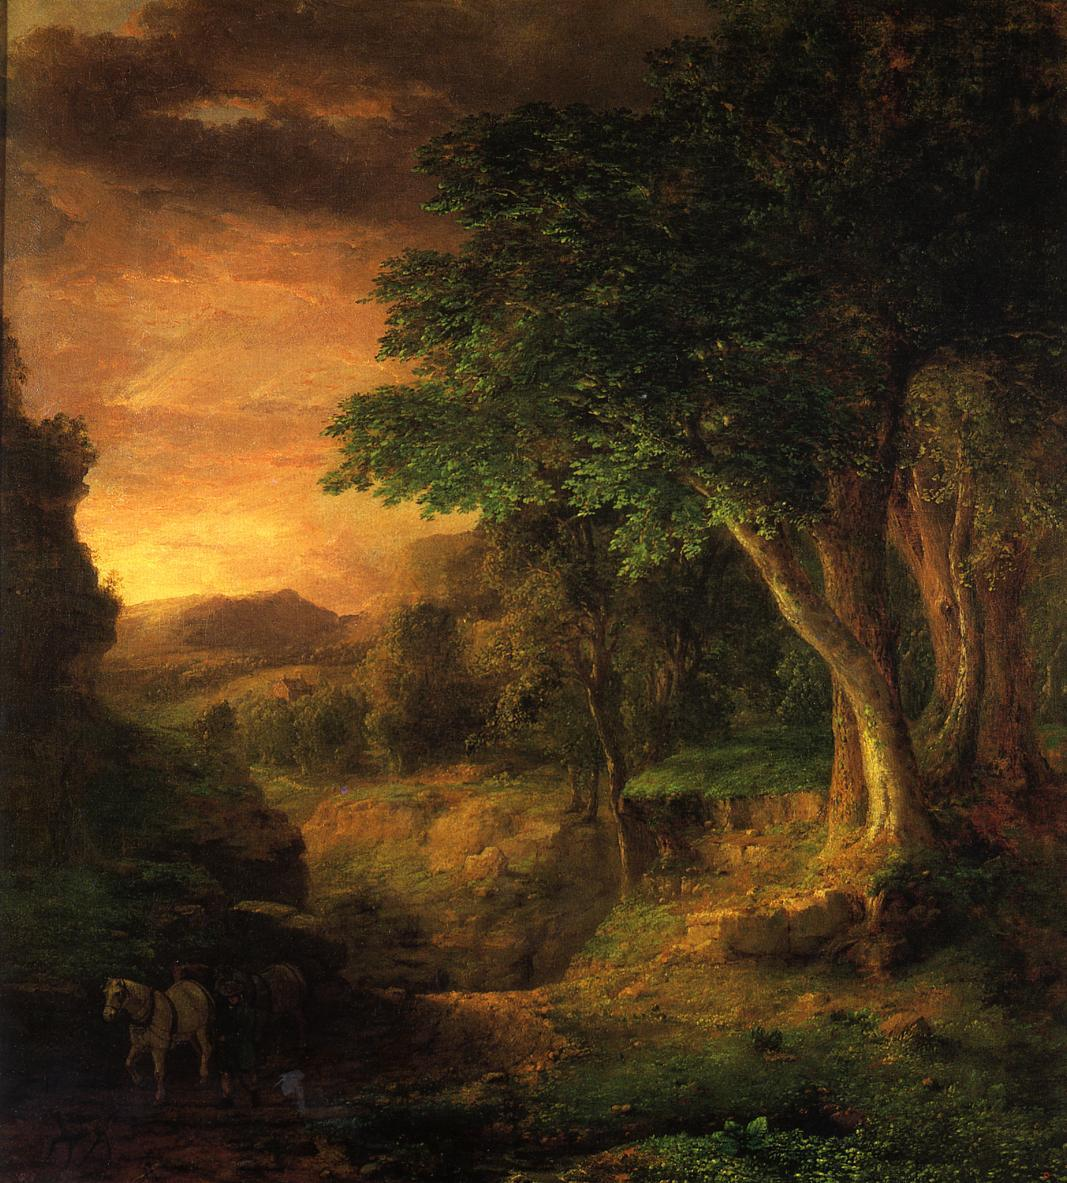 "the-paintrist :      artsandcrafts28 :     George Inness -  ""In the Berkshires""  - 1848-50      George Inness  (May 1, 1825 – August 3, 1894) was an influential American landscape painter. His work was influenced, in turn, by that of the old masters, the Hudson River school, the Barbizon school, and, finally, by the theology of Emanuel Swedenborg, whose spiritualism found vivid expression in the work of Inness' maturity. Often called ""the father of American landscape painting,"" Inness is best known for these mature works that not only exemplified the Tonalist movement but also displayed an original and uniquely American style."